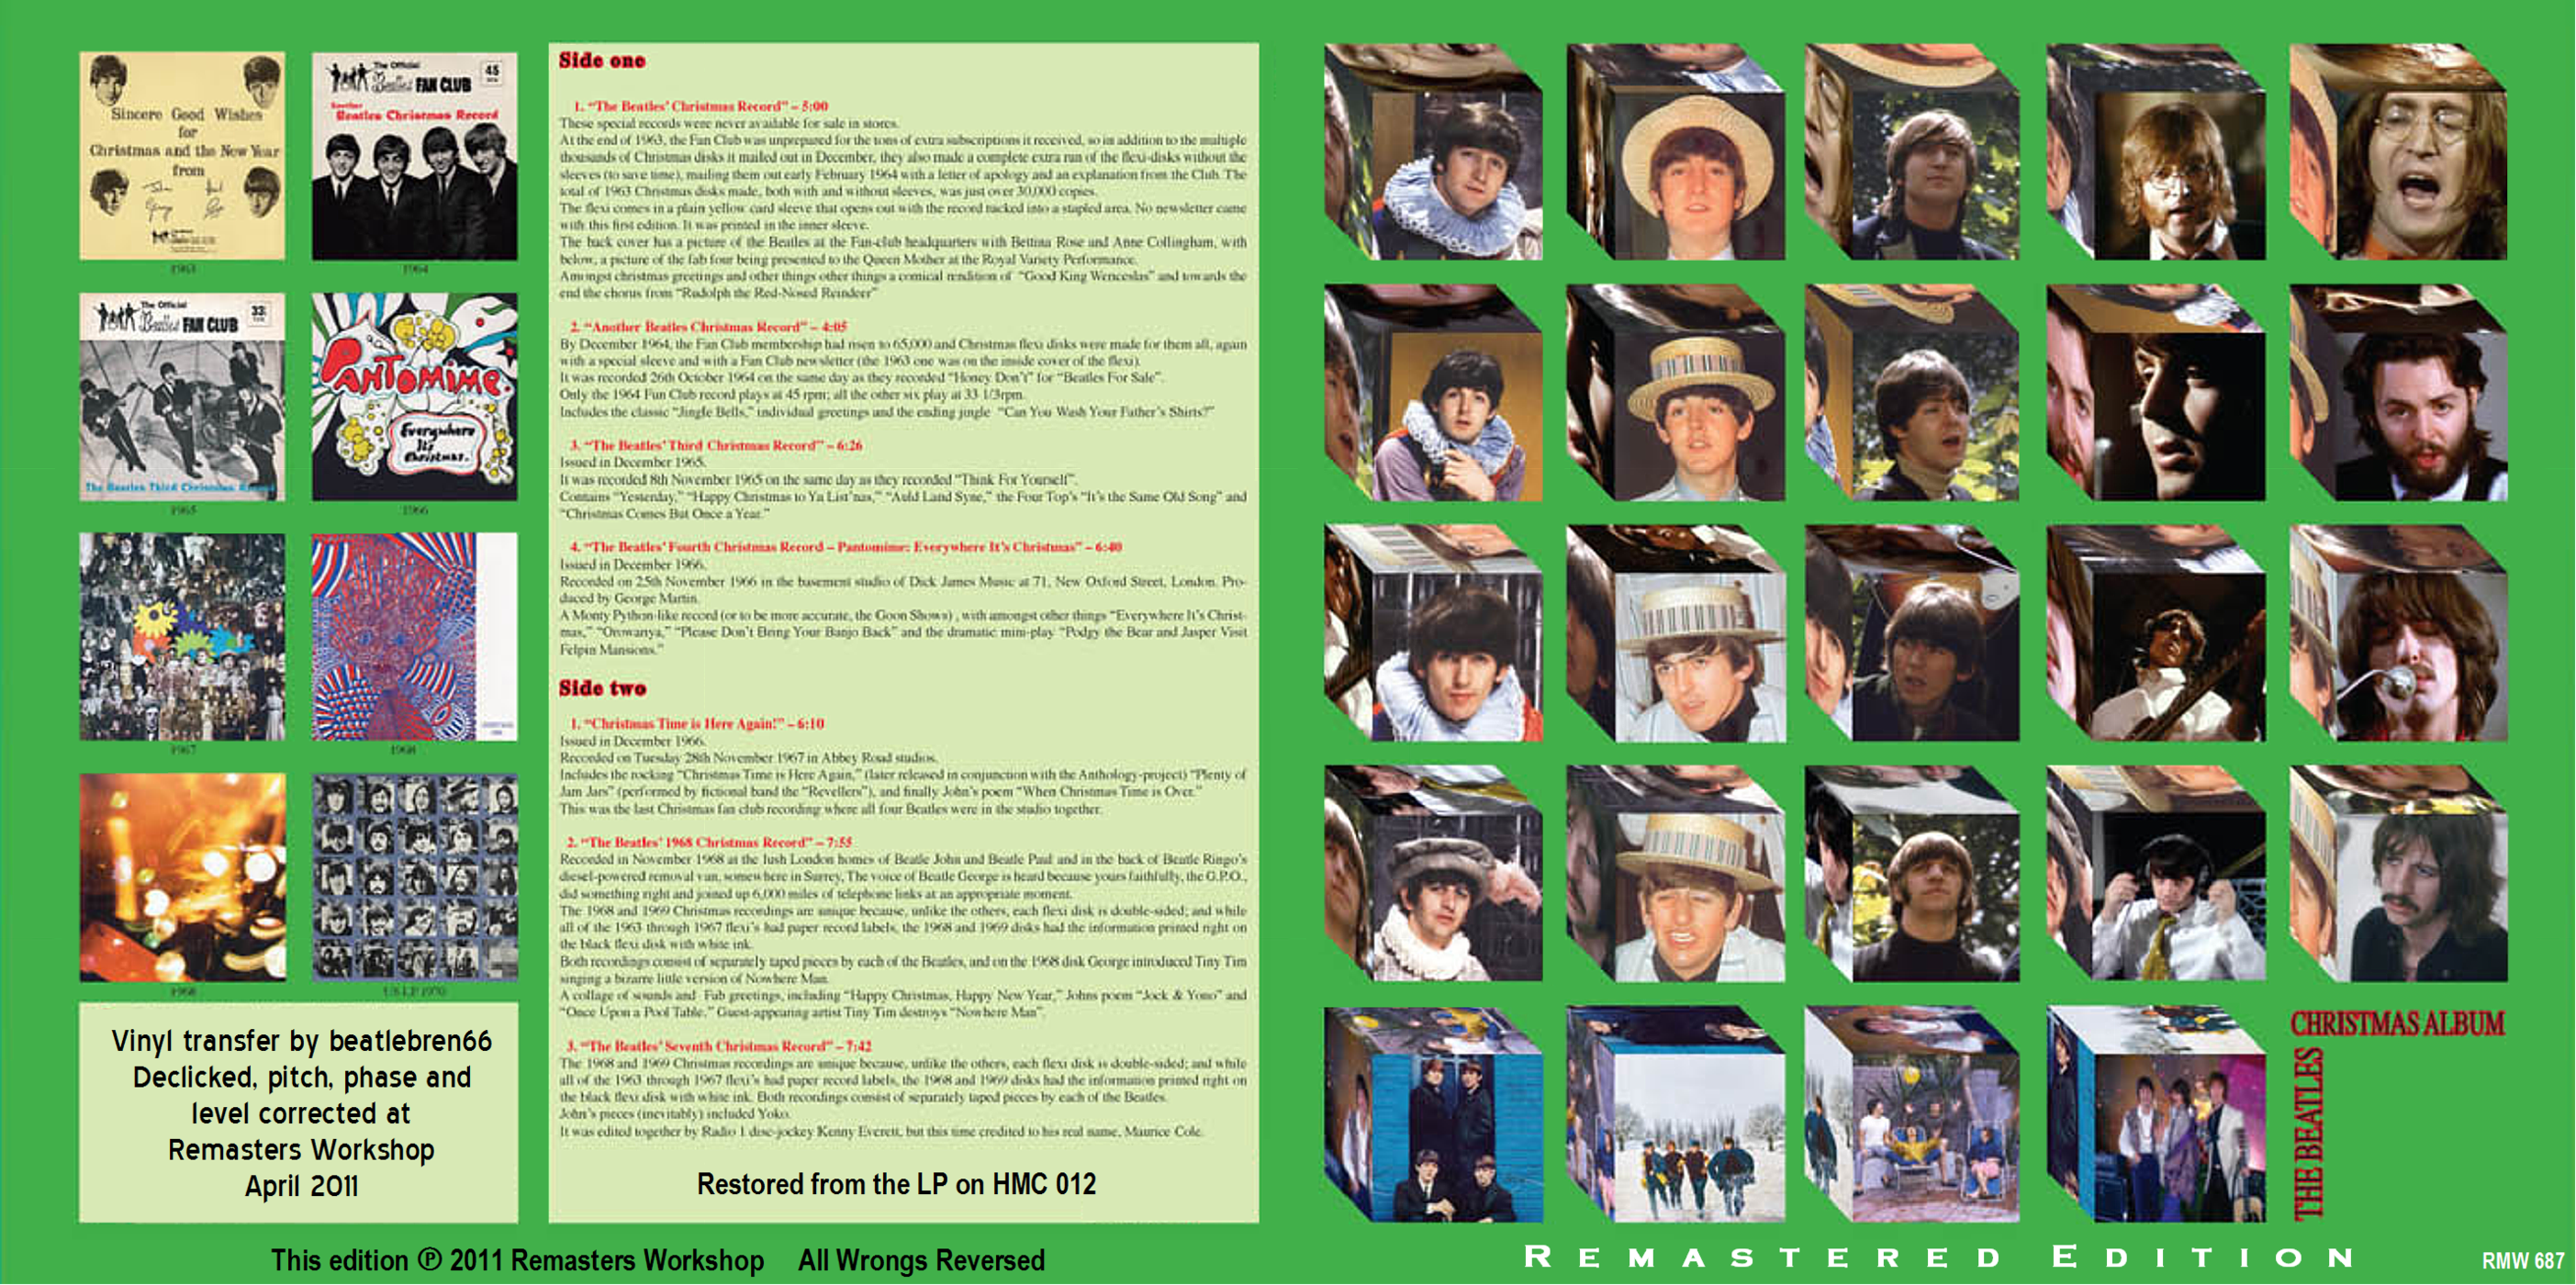 Beatles2011-04ChristmasAlbumRemasteredEdition (2).png